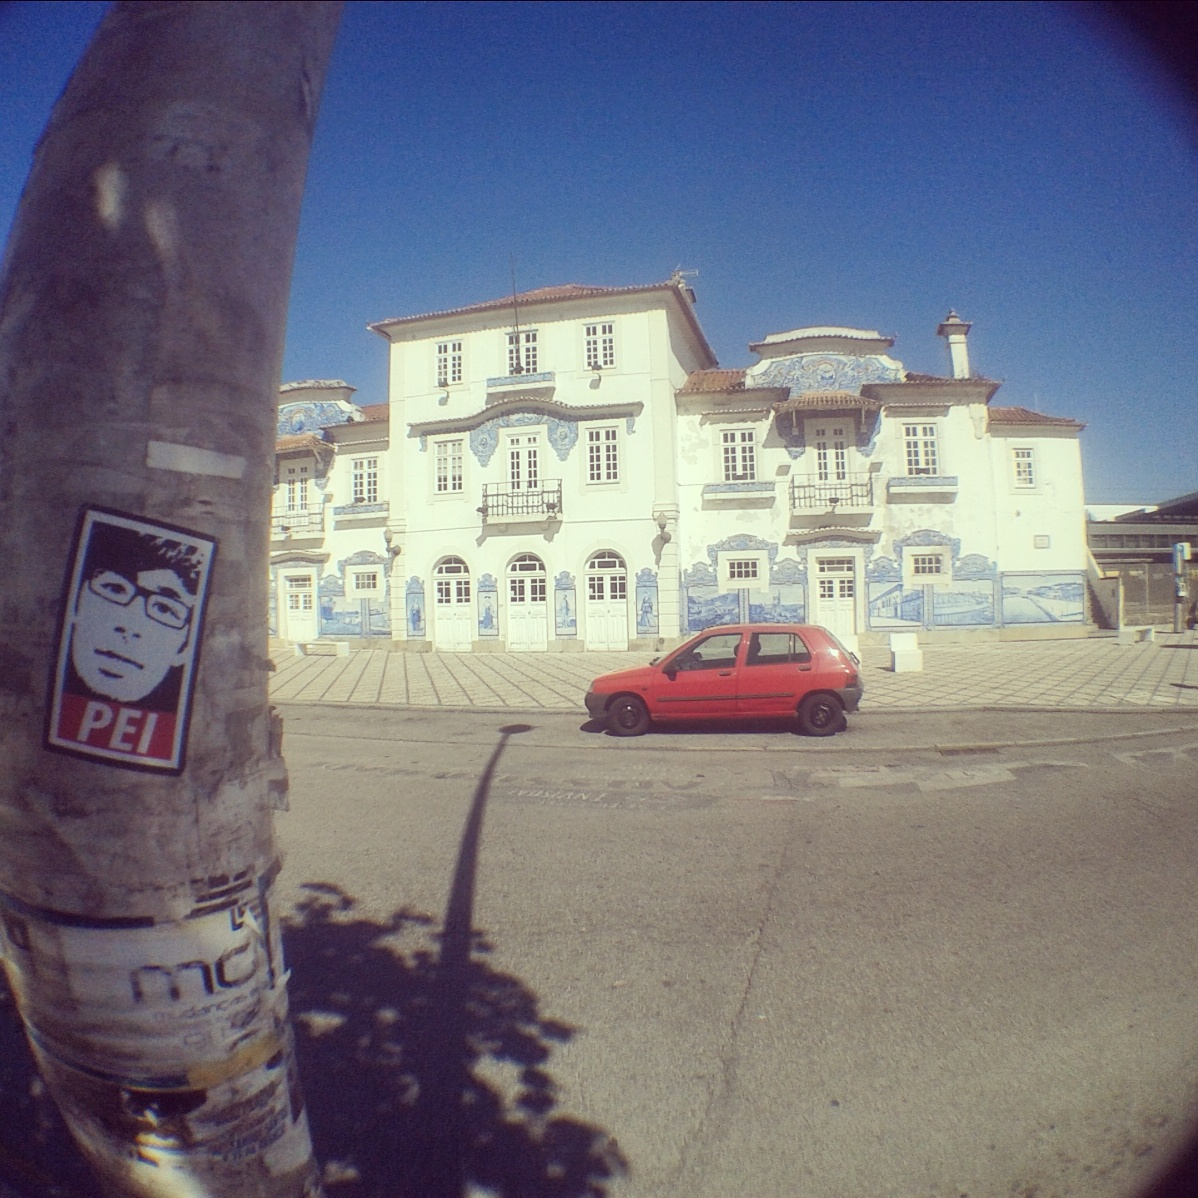 Peipegata sticker slap stickerart  bombardeando Aveiro-Portugal